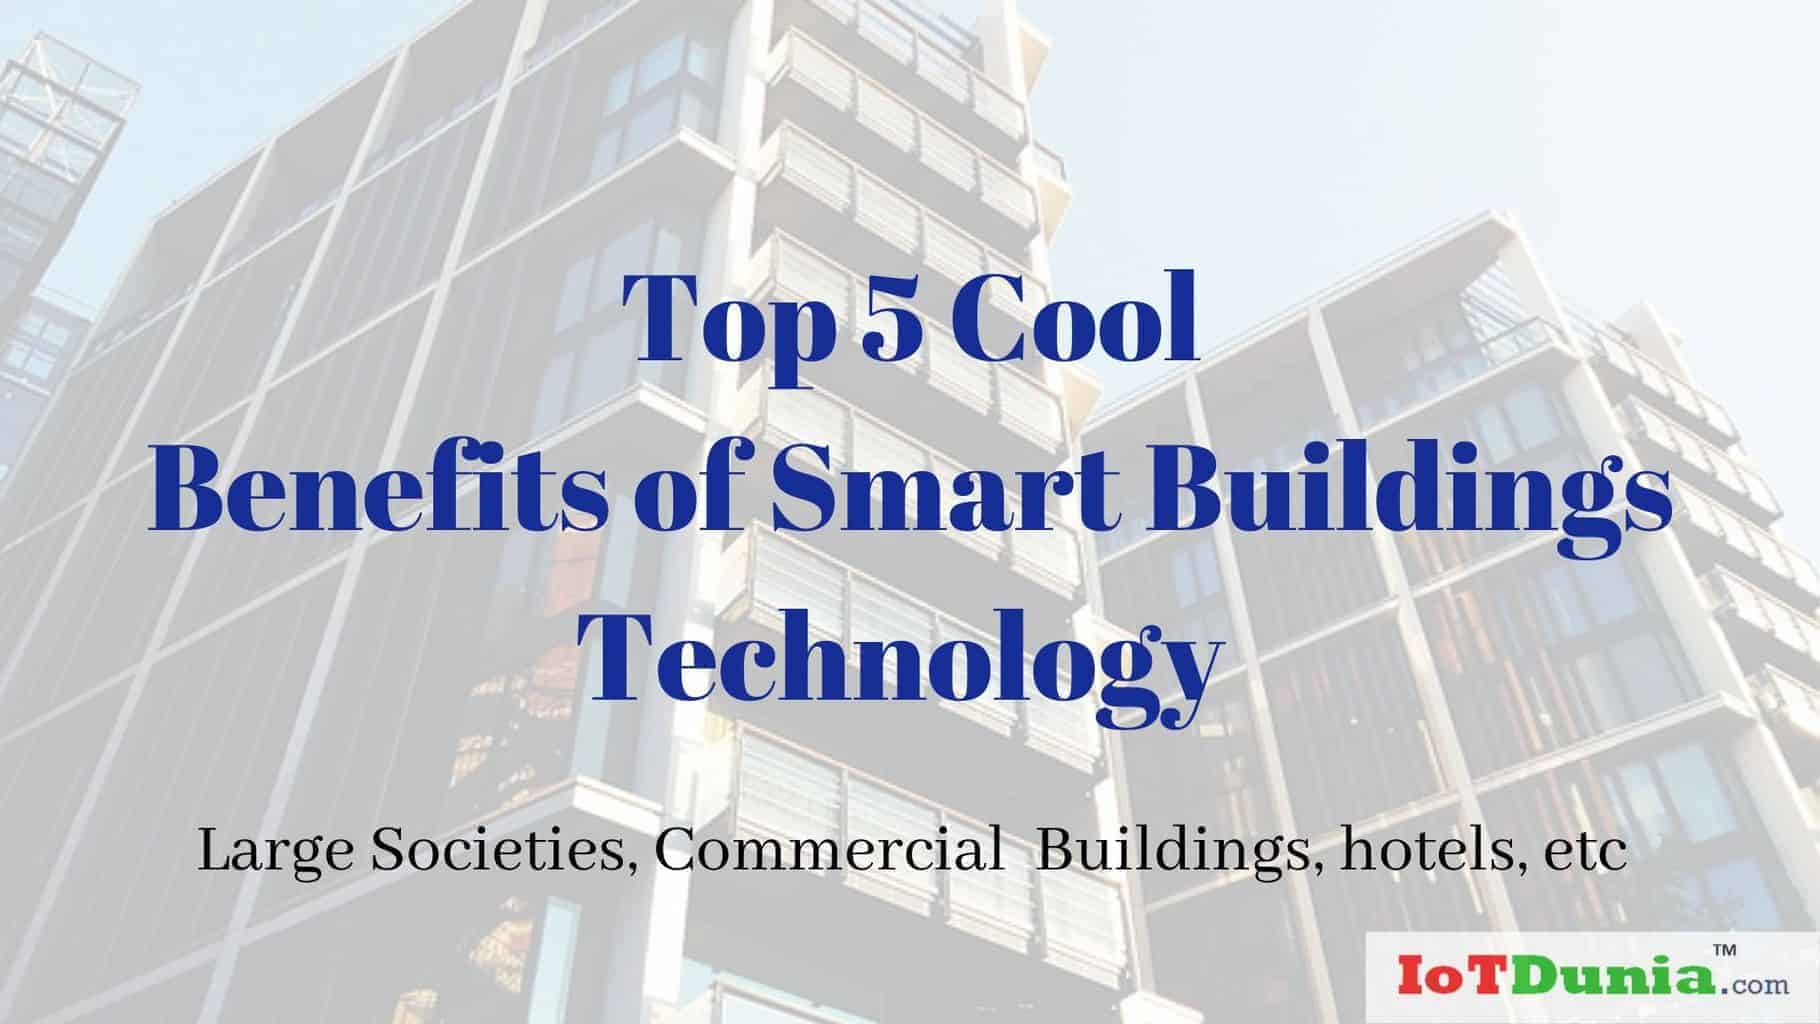 Top 5 Cool Benefits of Smart Buildings technology